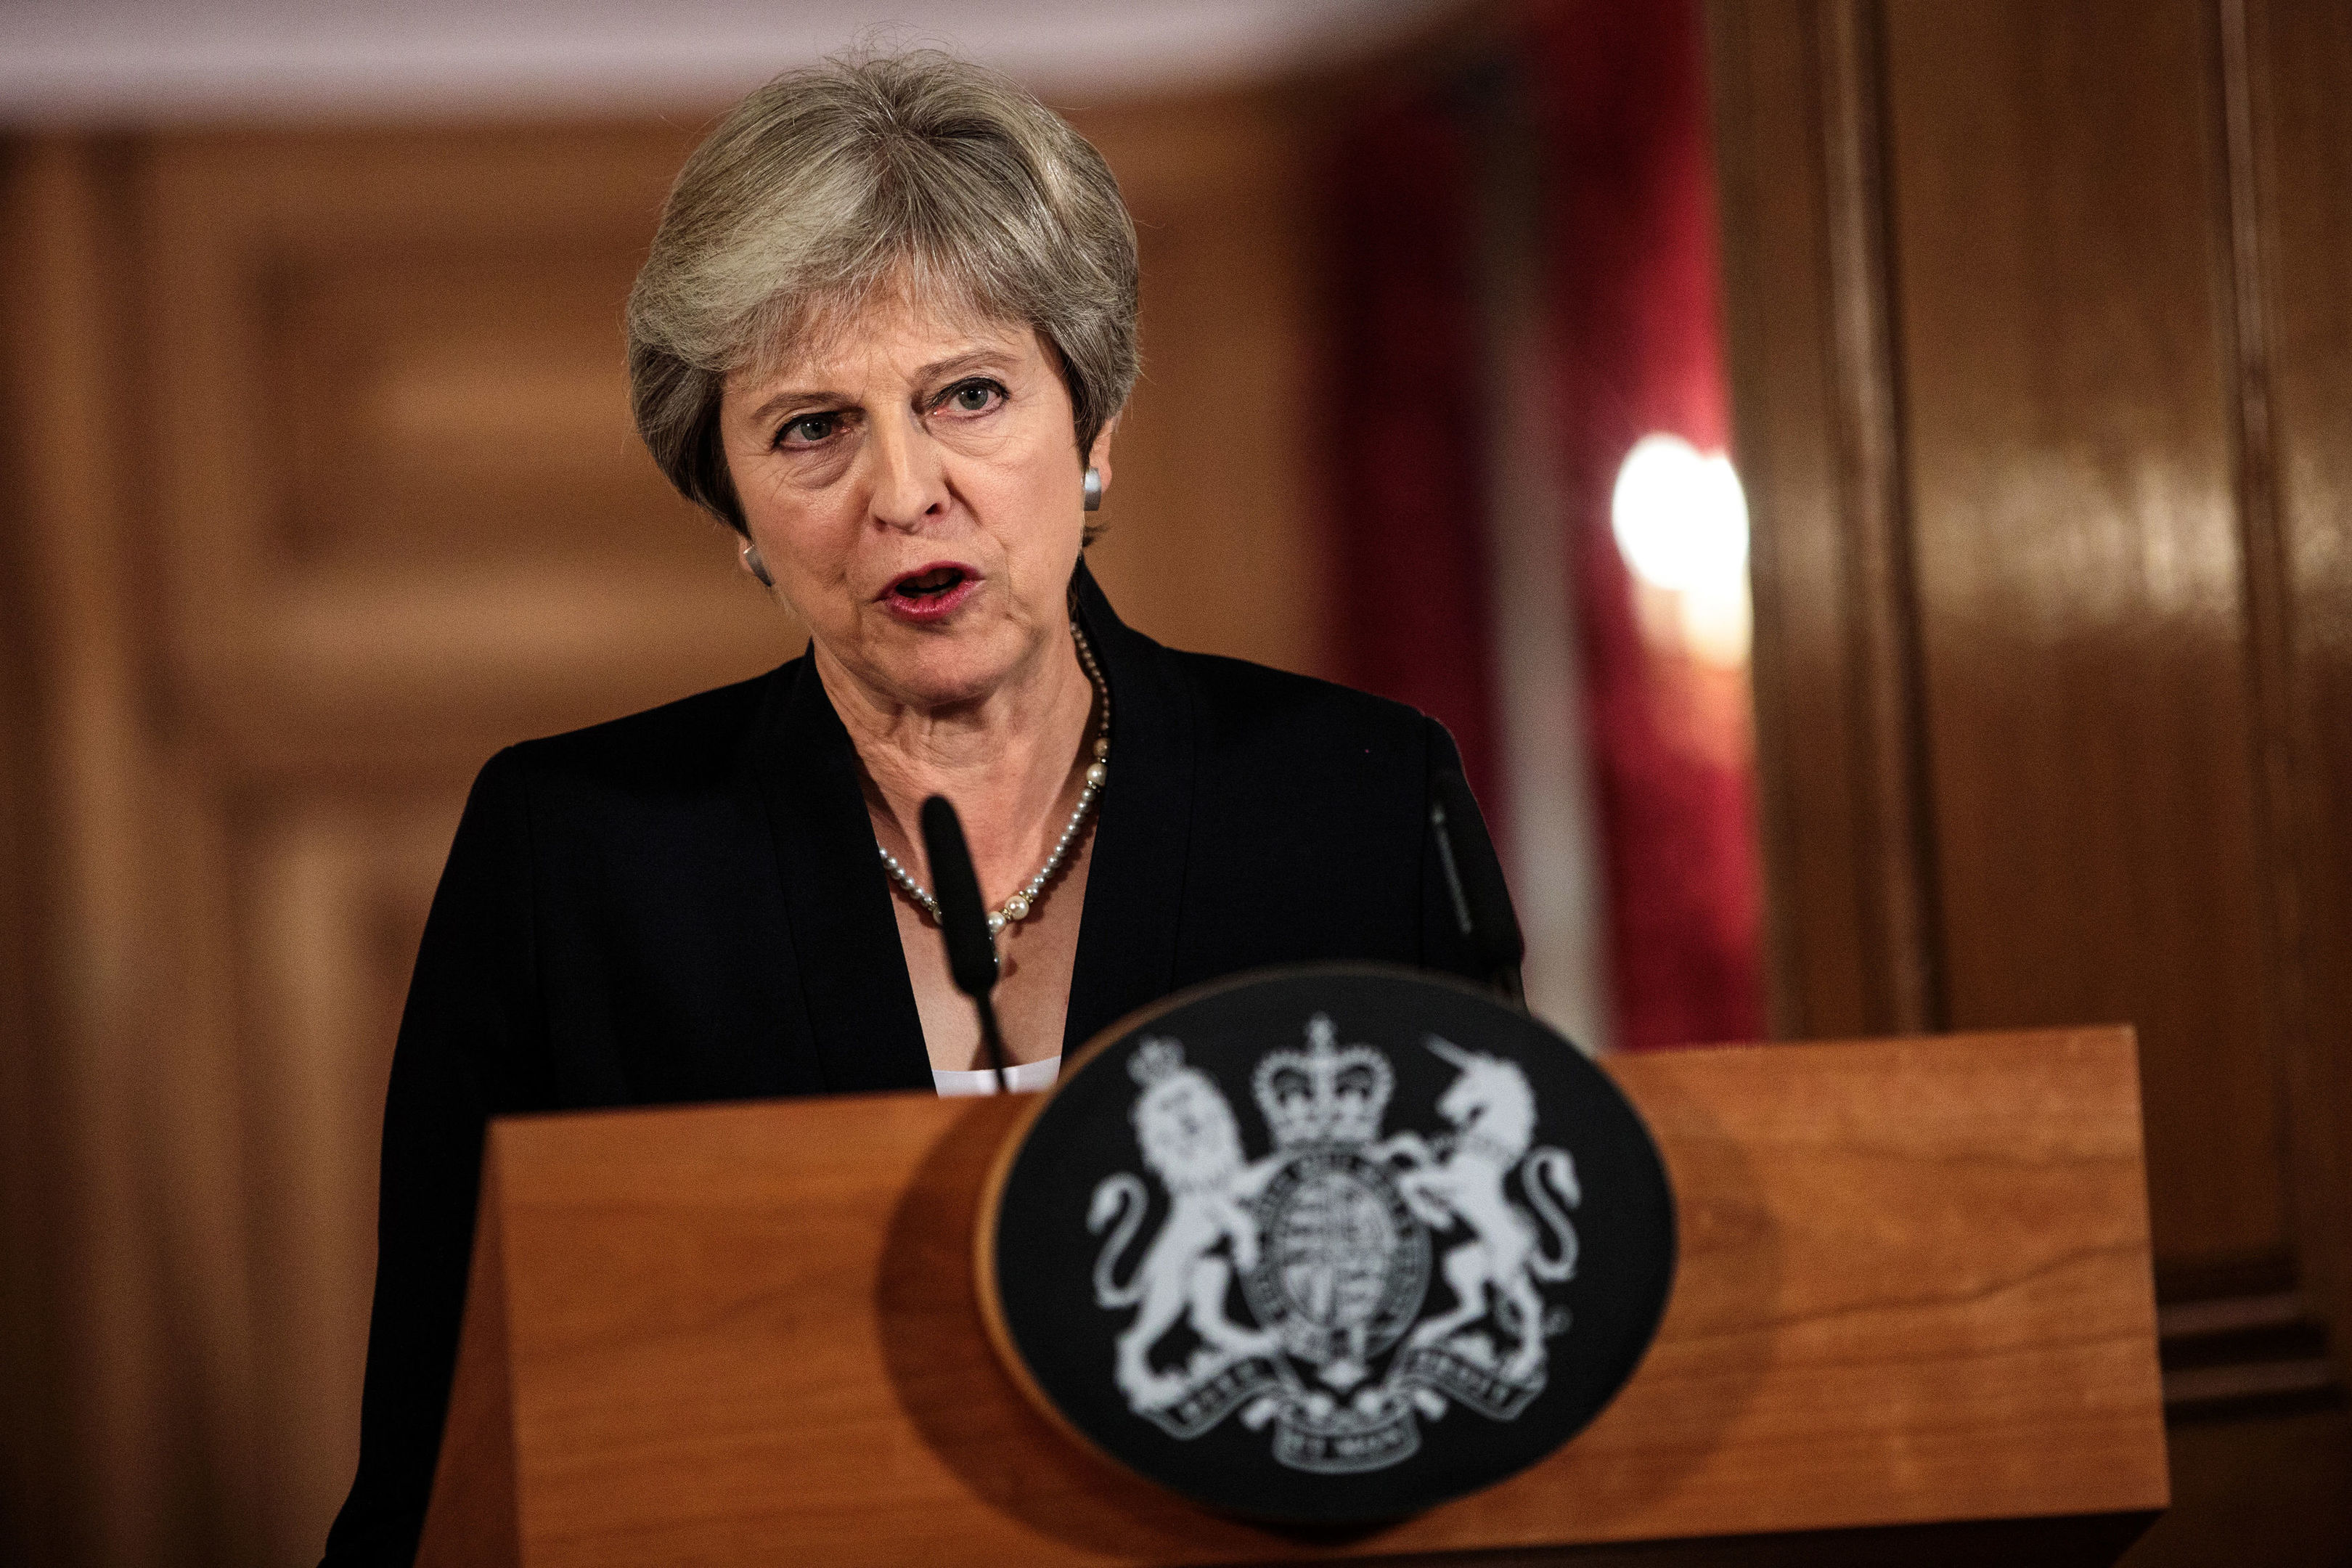 Prime Minister Theresa May speaking in Downing Street in the aftermath of the Salzburg summit.